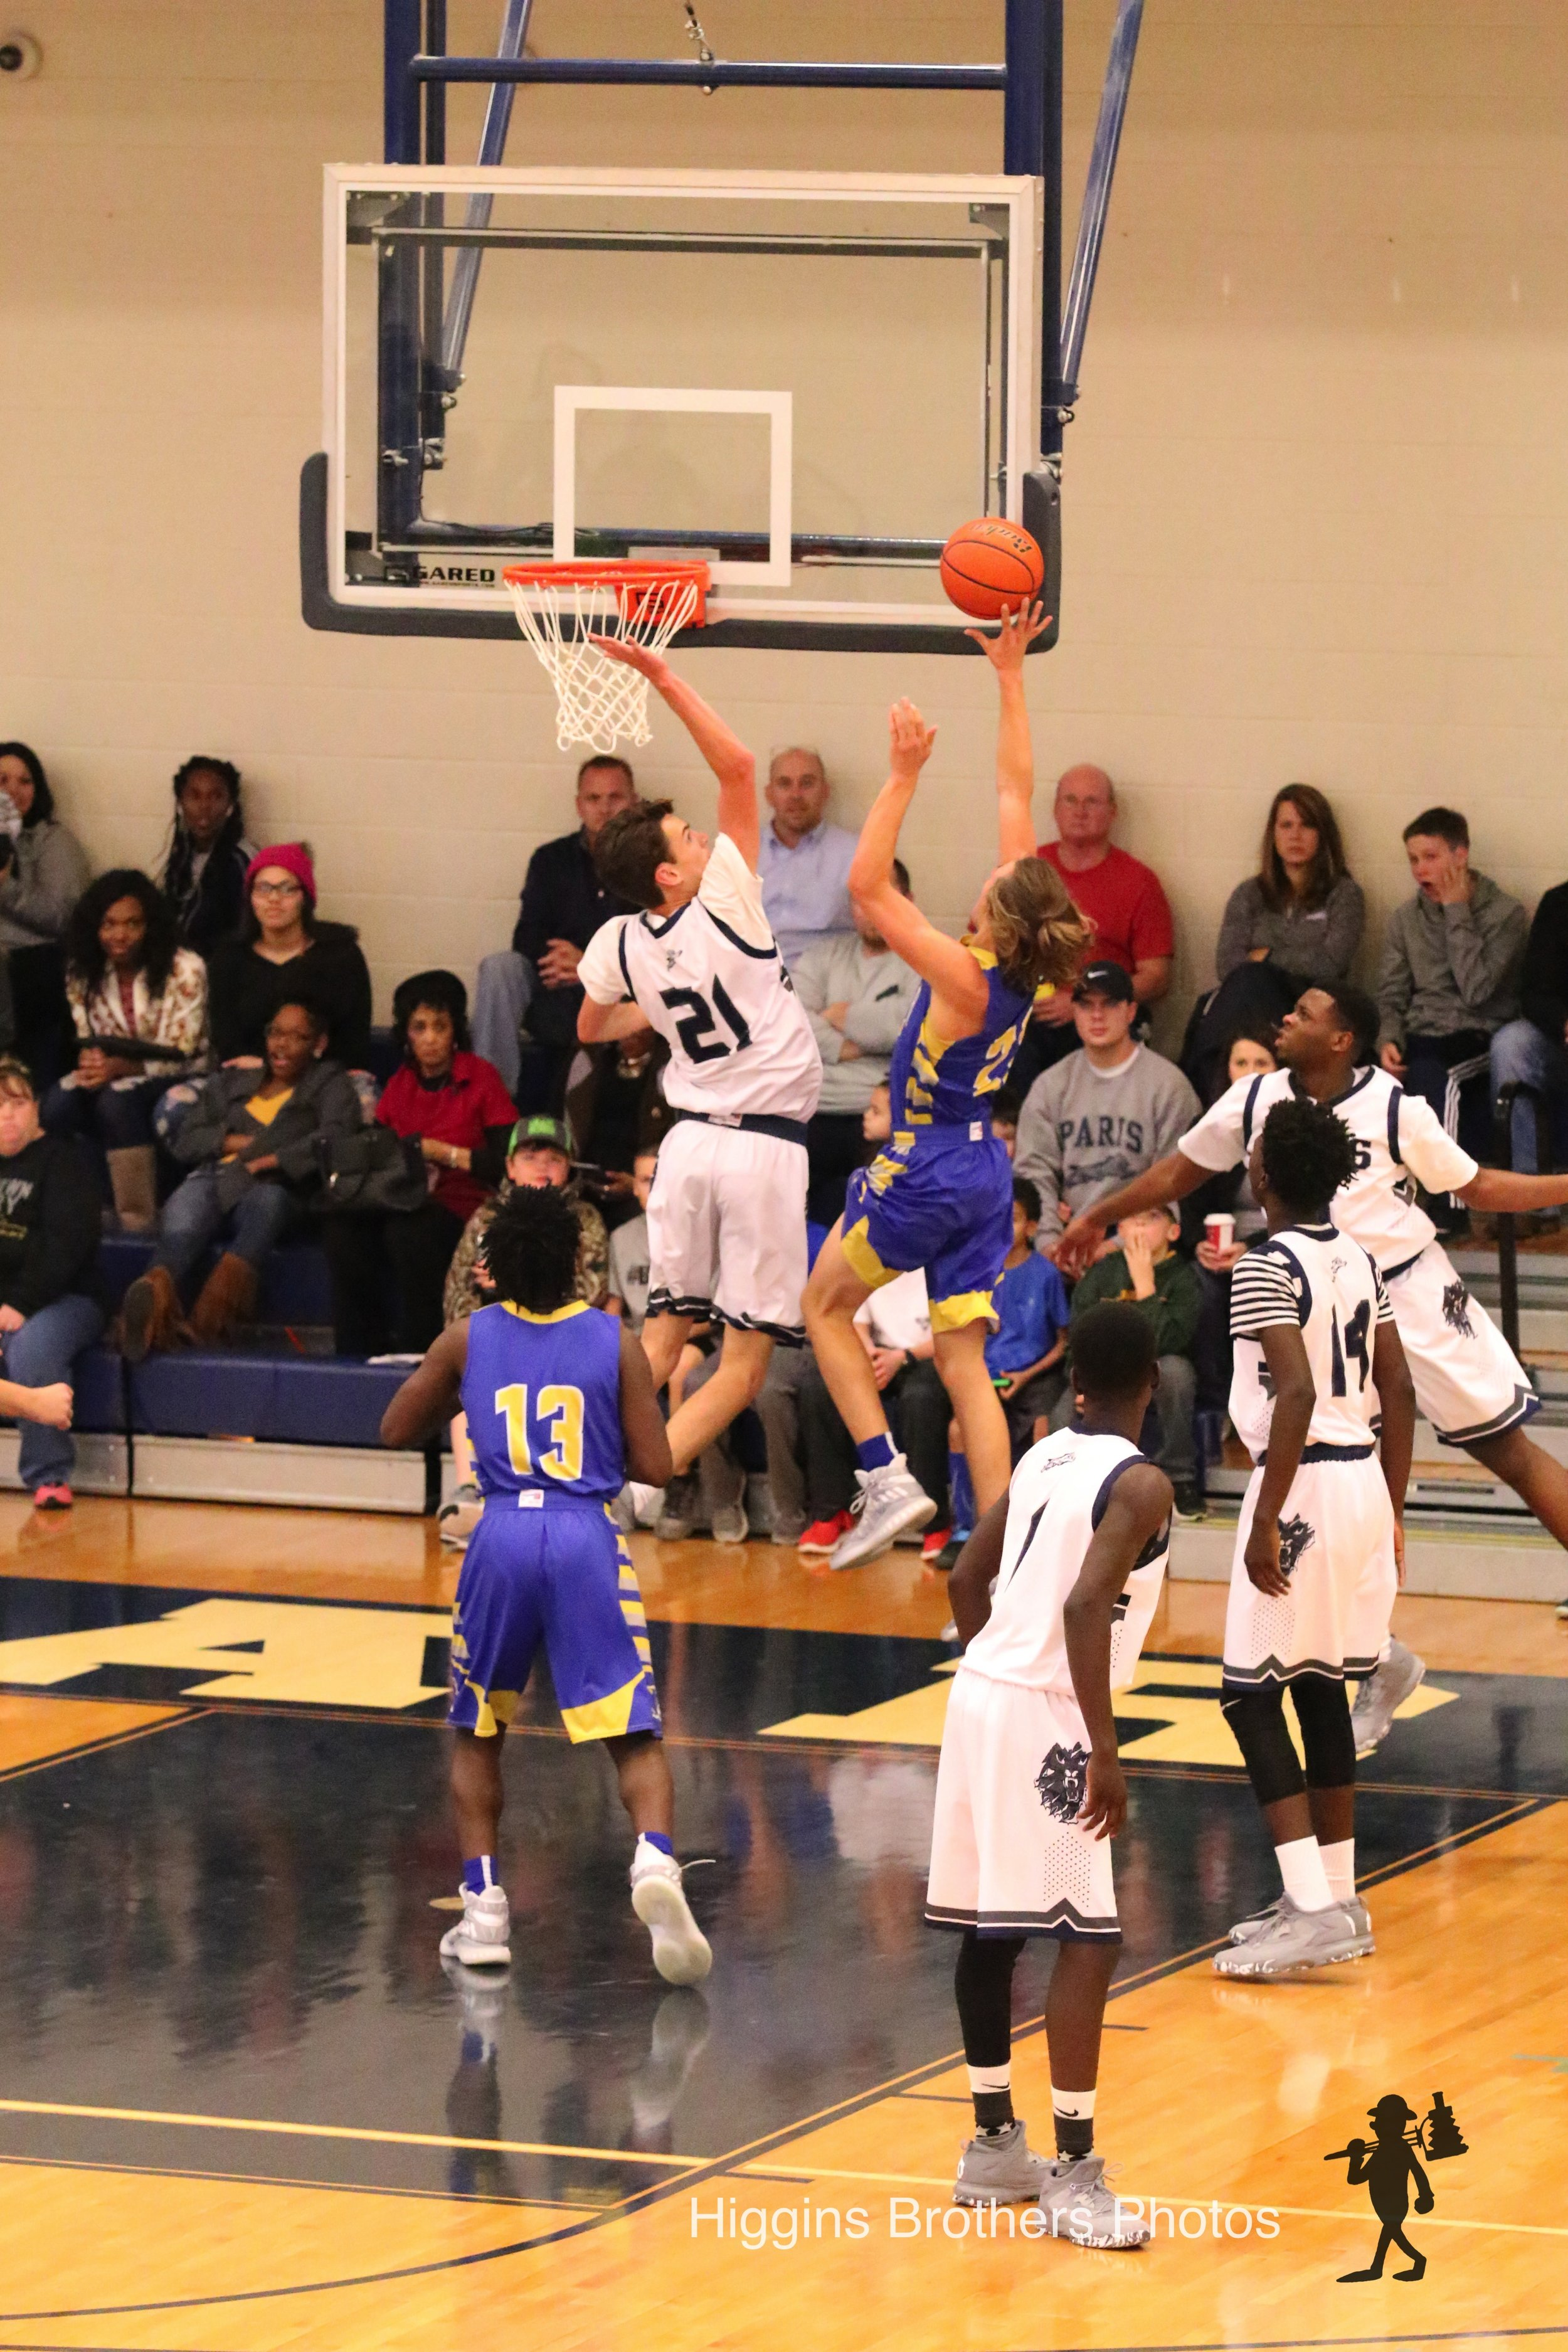 Photo by Bill Higgins: Sam Asay (21) going up for a shot while Menderiz Gray (13) watches.